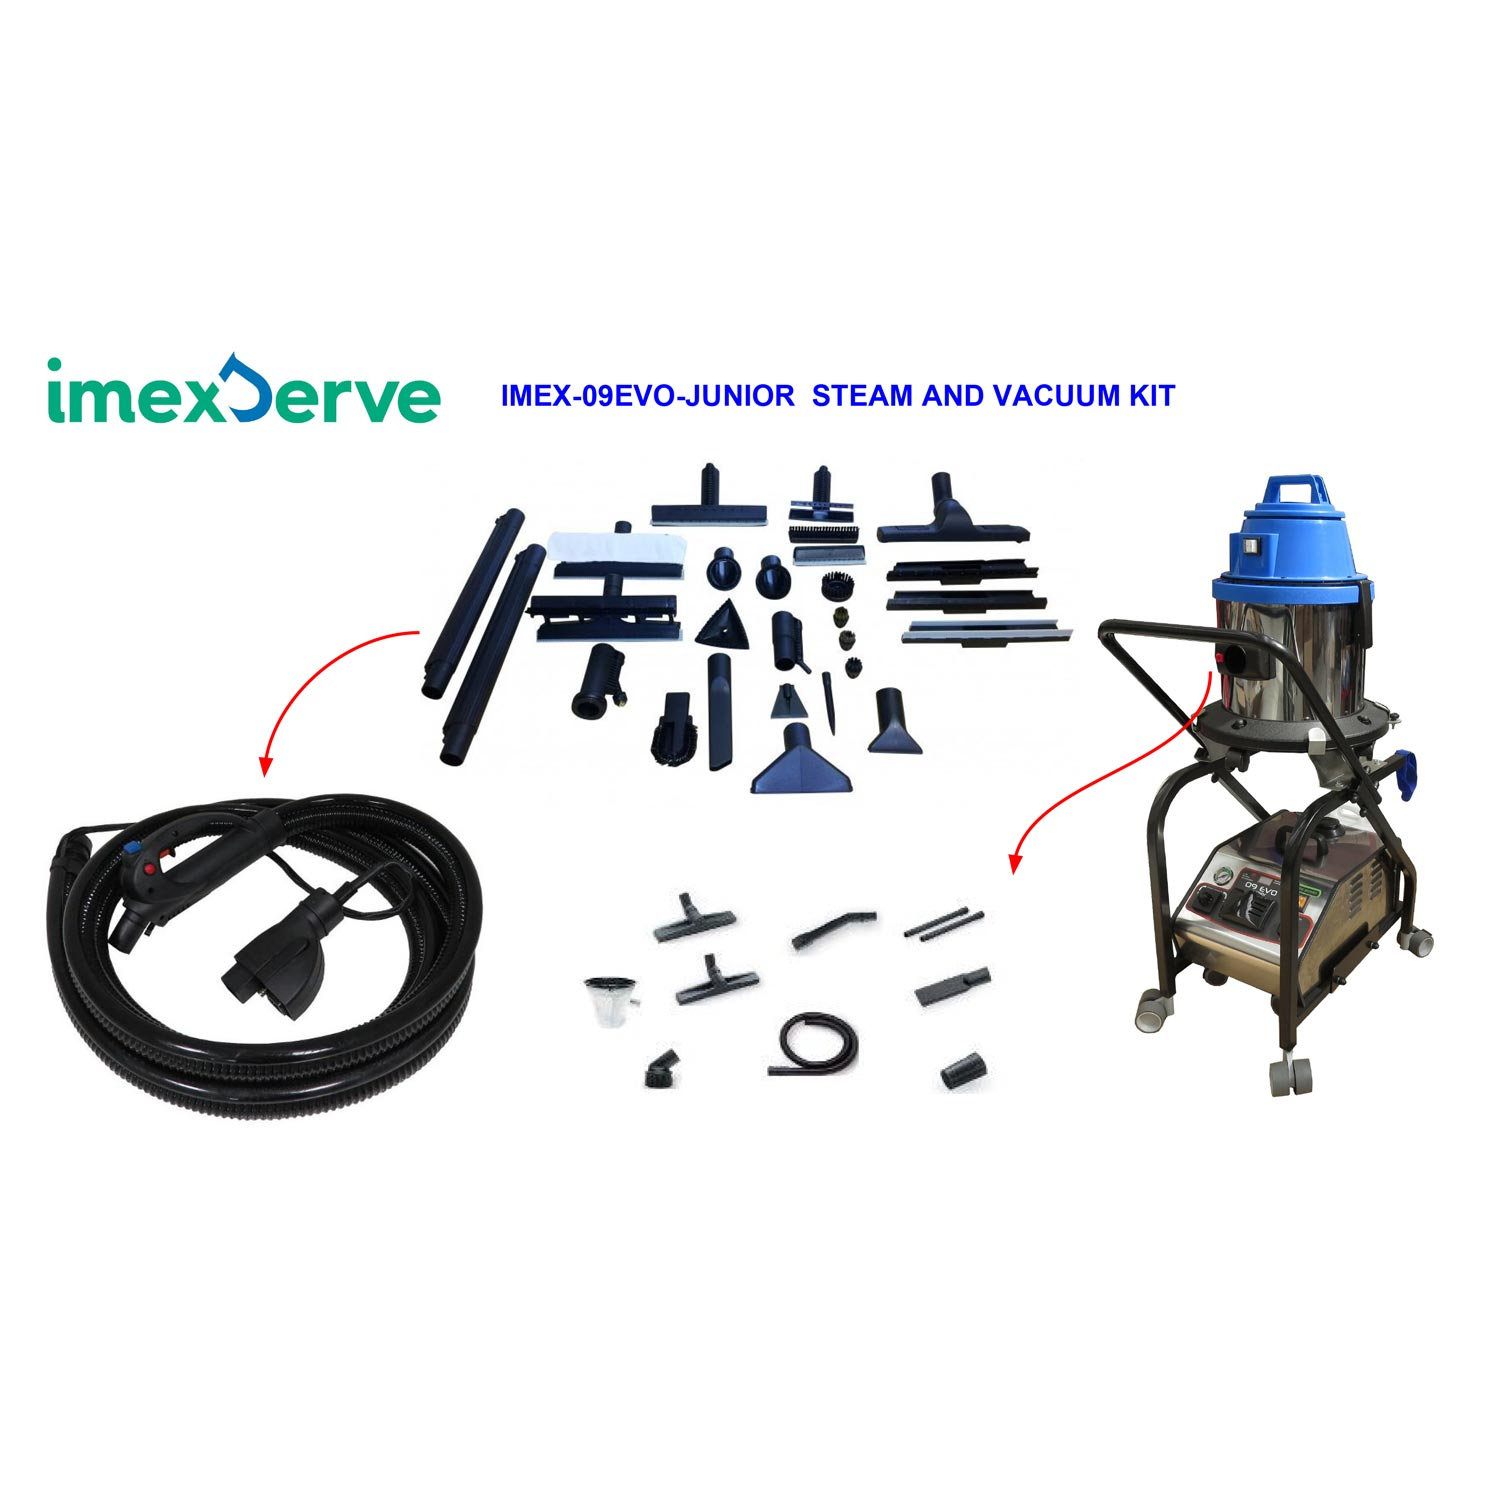 -ImexServe 09Evo Junior Steam & Vacuum Vapor Cleaner W/ Accessories 3200 Watt Dual Heating Elements 100% More Power 18651359 FREE Shipping 87 psi